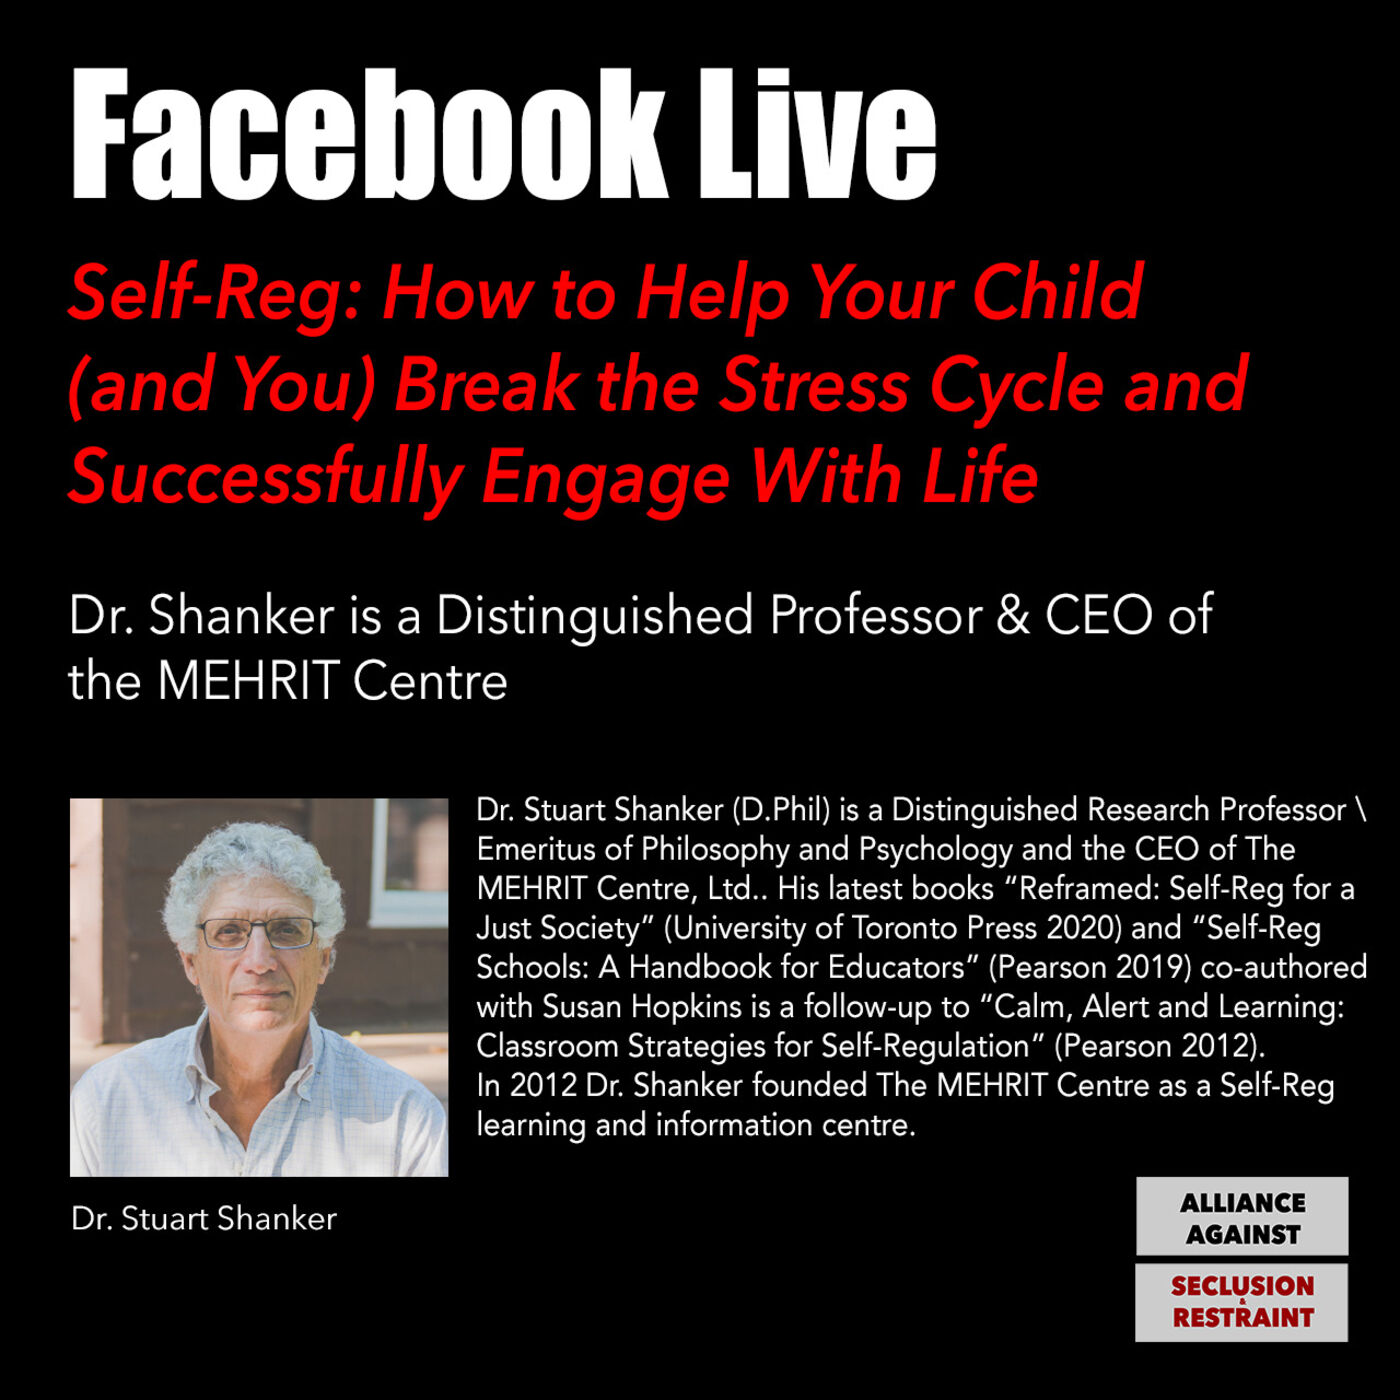 Self-Reg: How to Help Your Child (and You) Break the Stress Cycle and Successfully Engage w/ Life